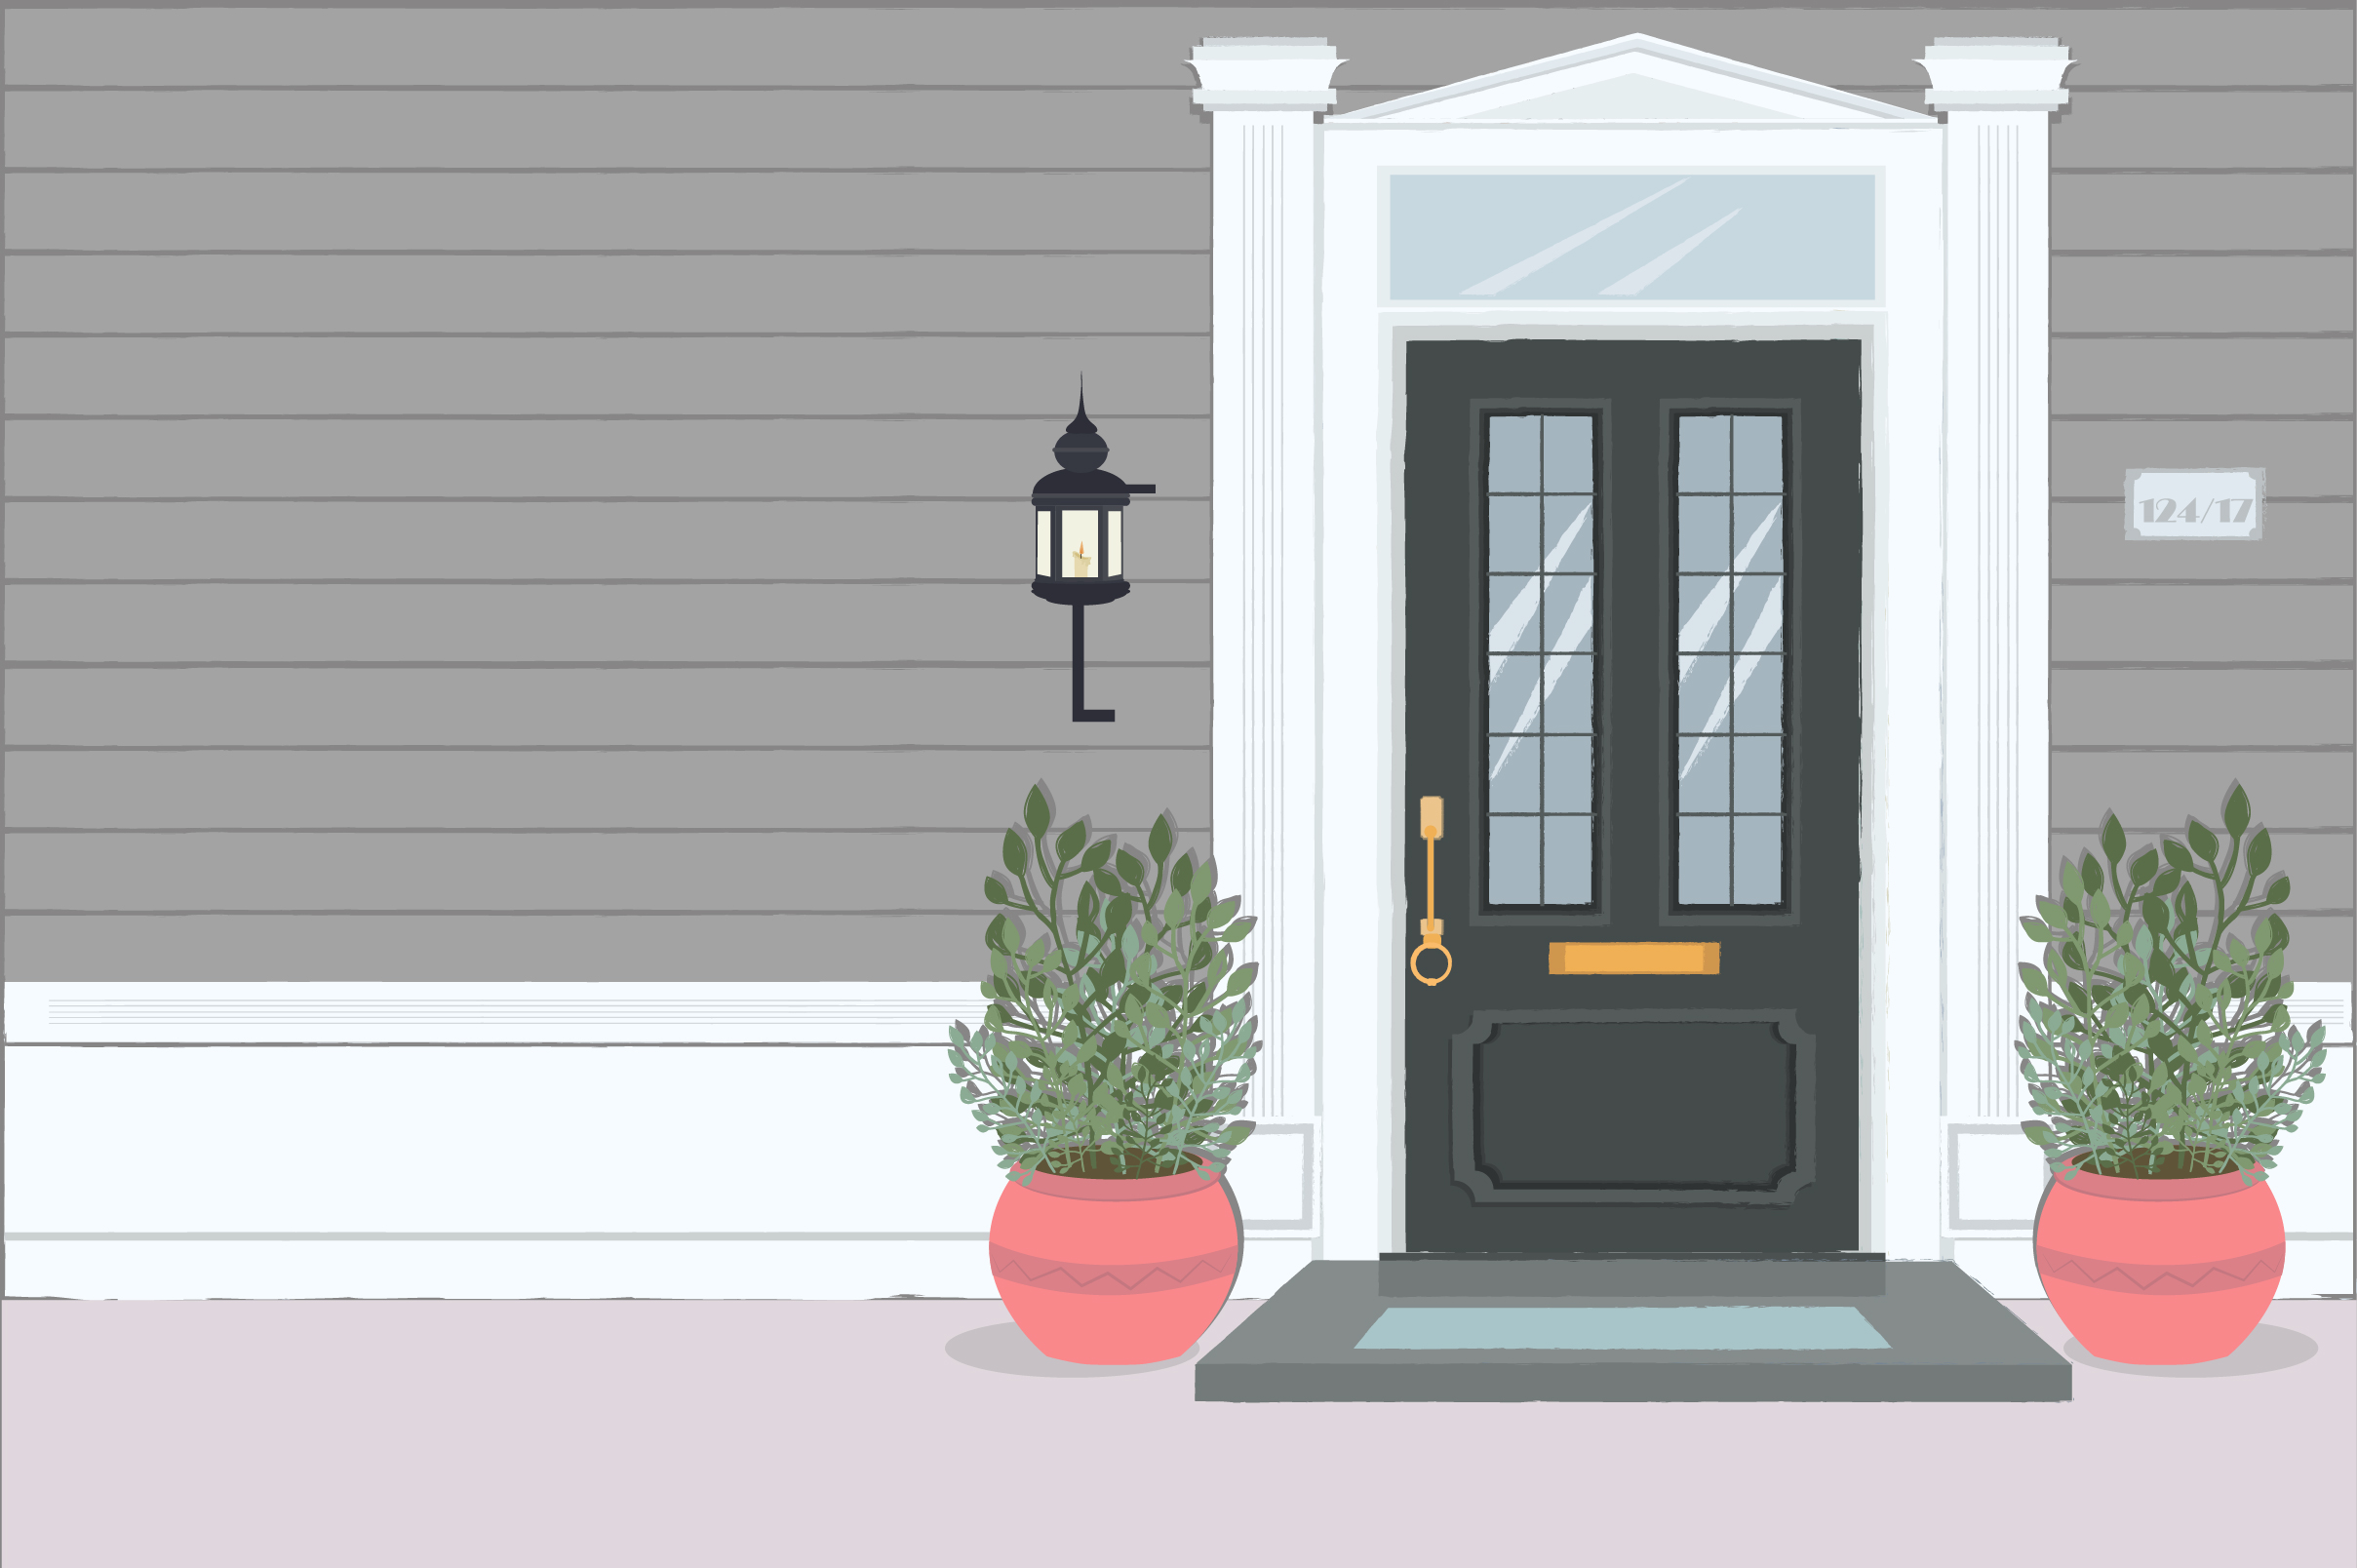 Doors design collection example image 9